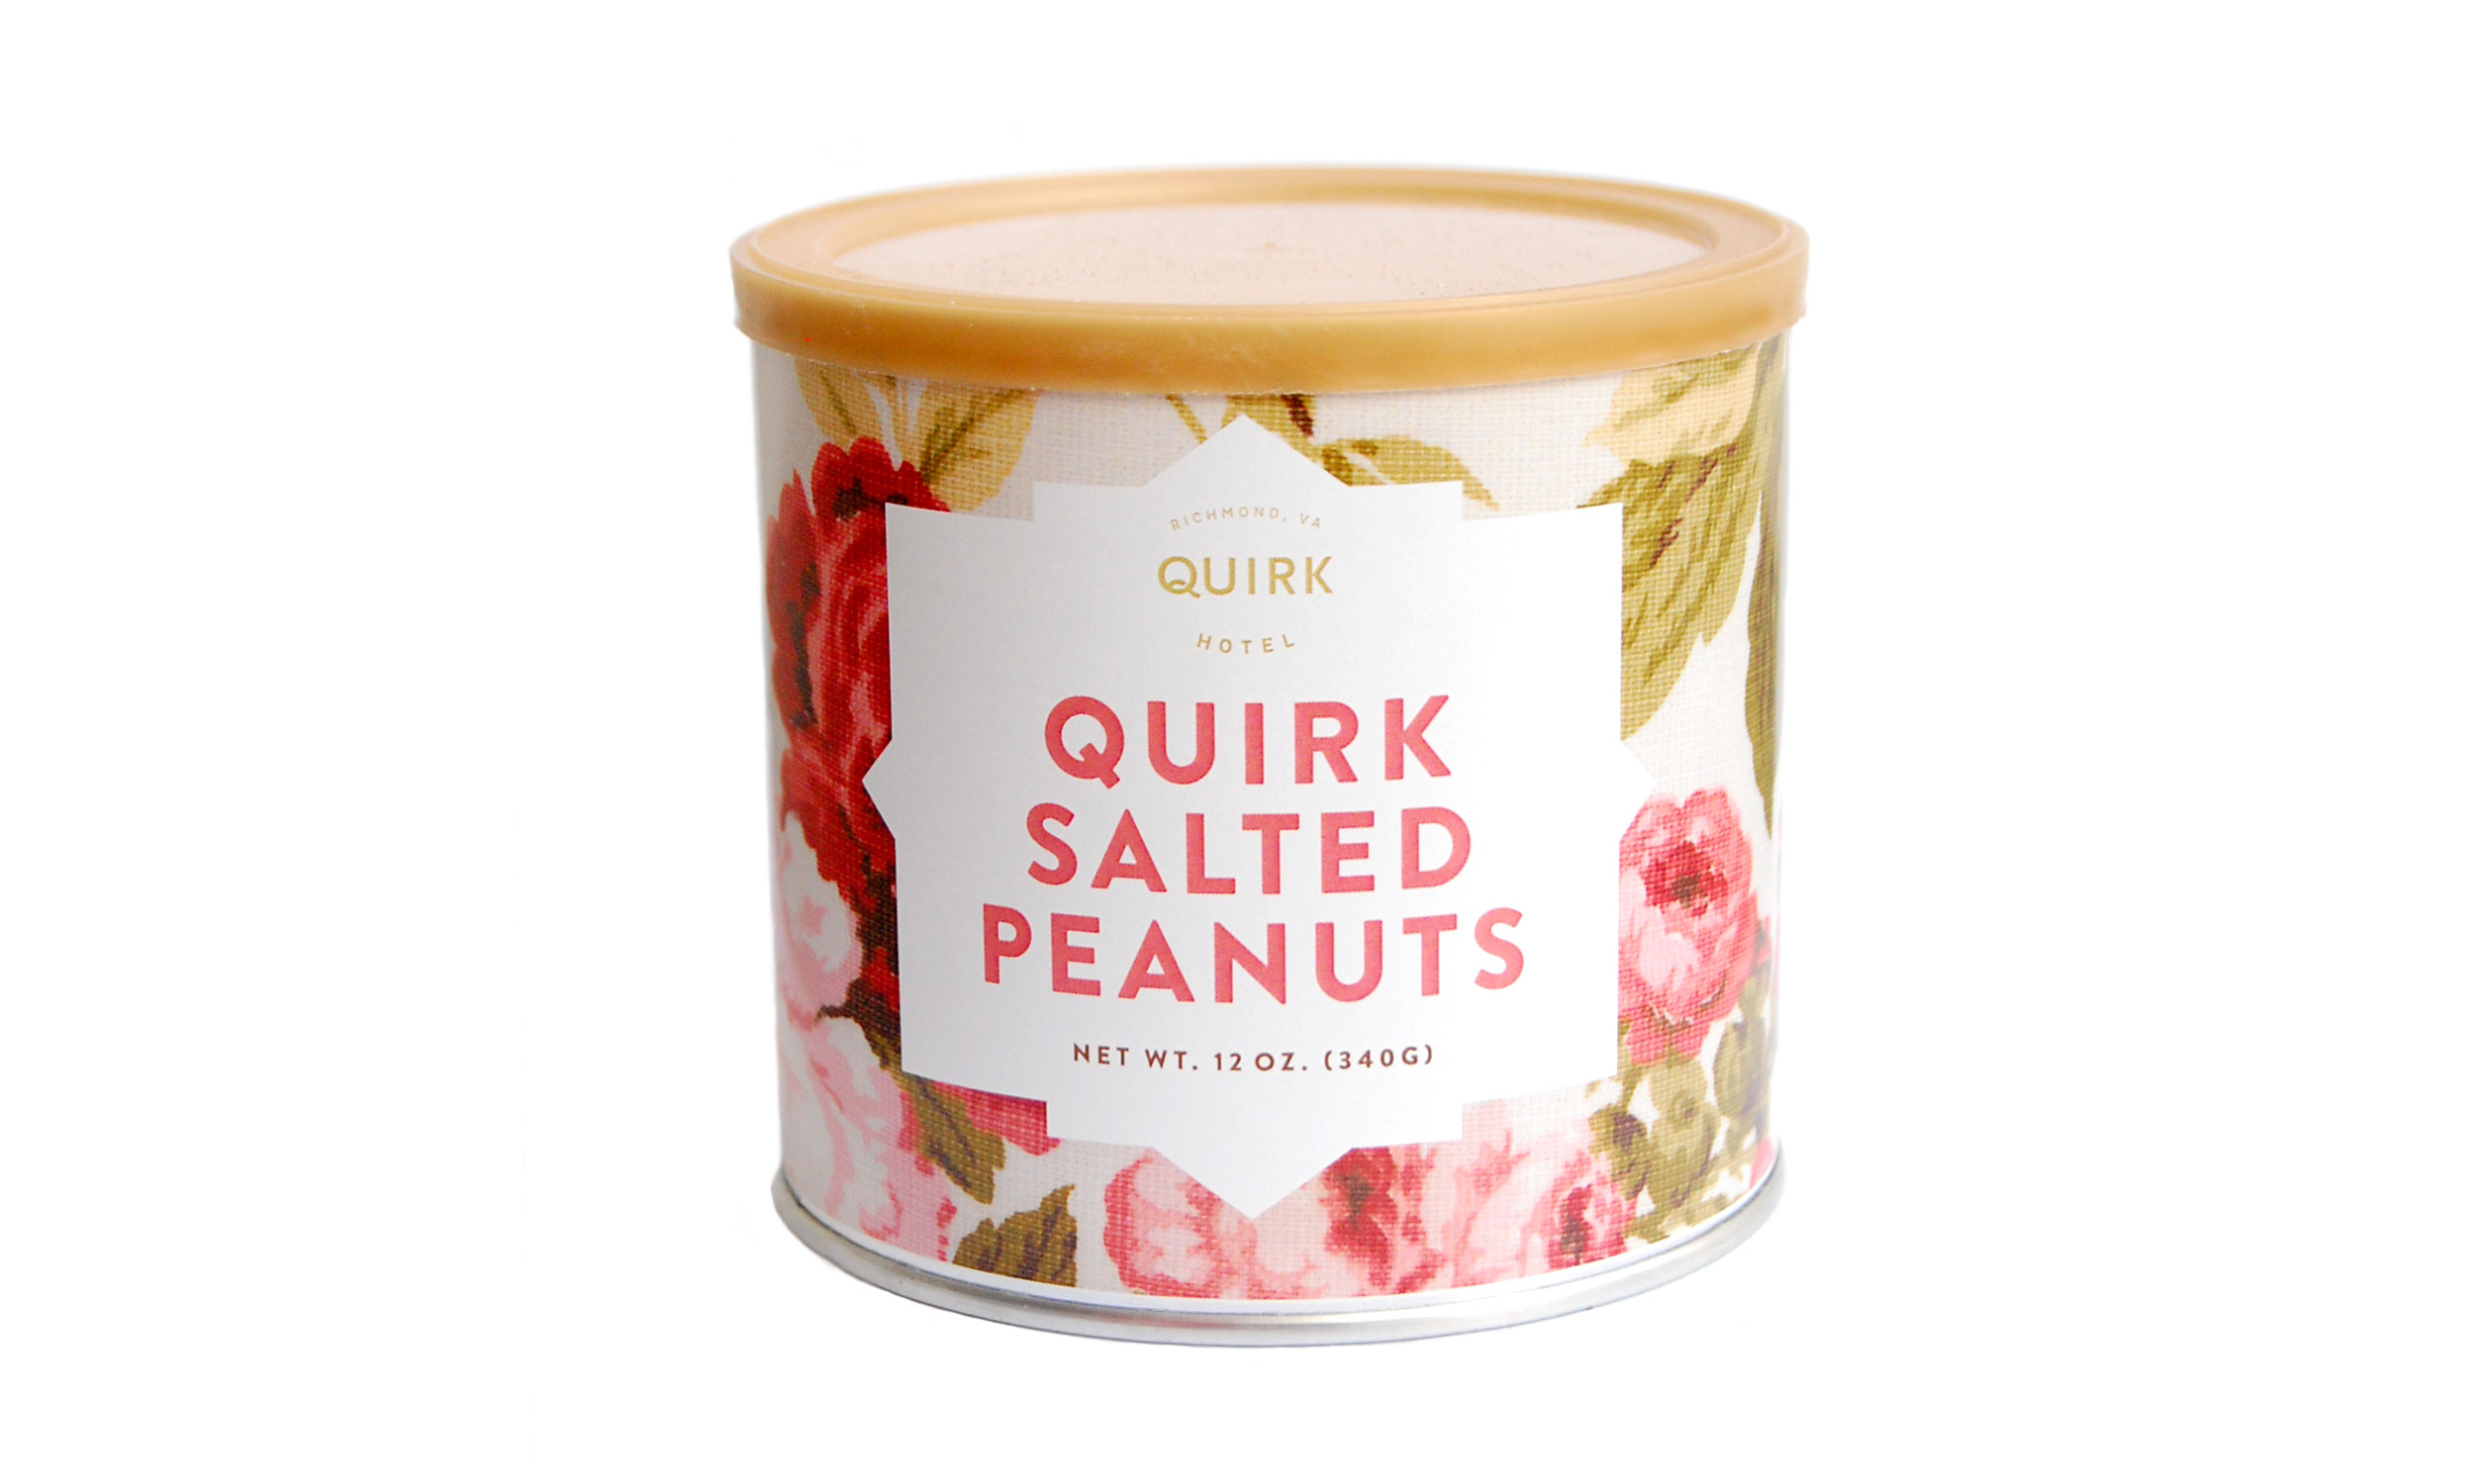 Quirk Peanuts, 12 oz,  exclusively from Hubs Virginia Peanuts,  $9.50    Contact us for purchase